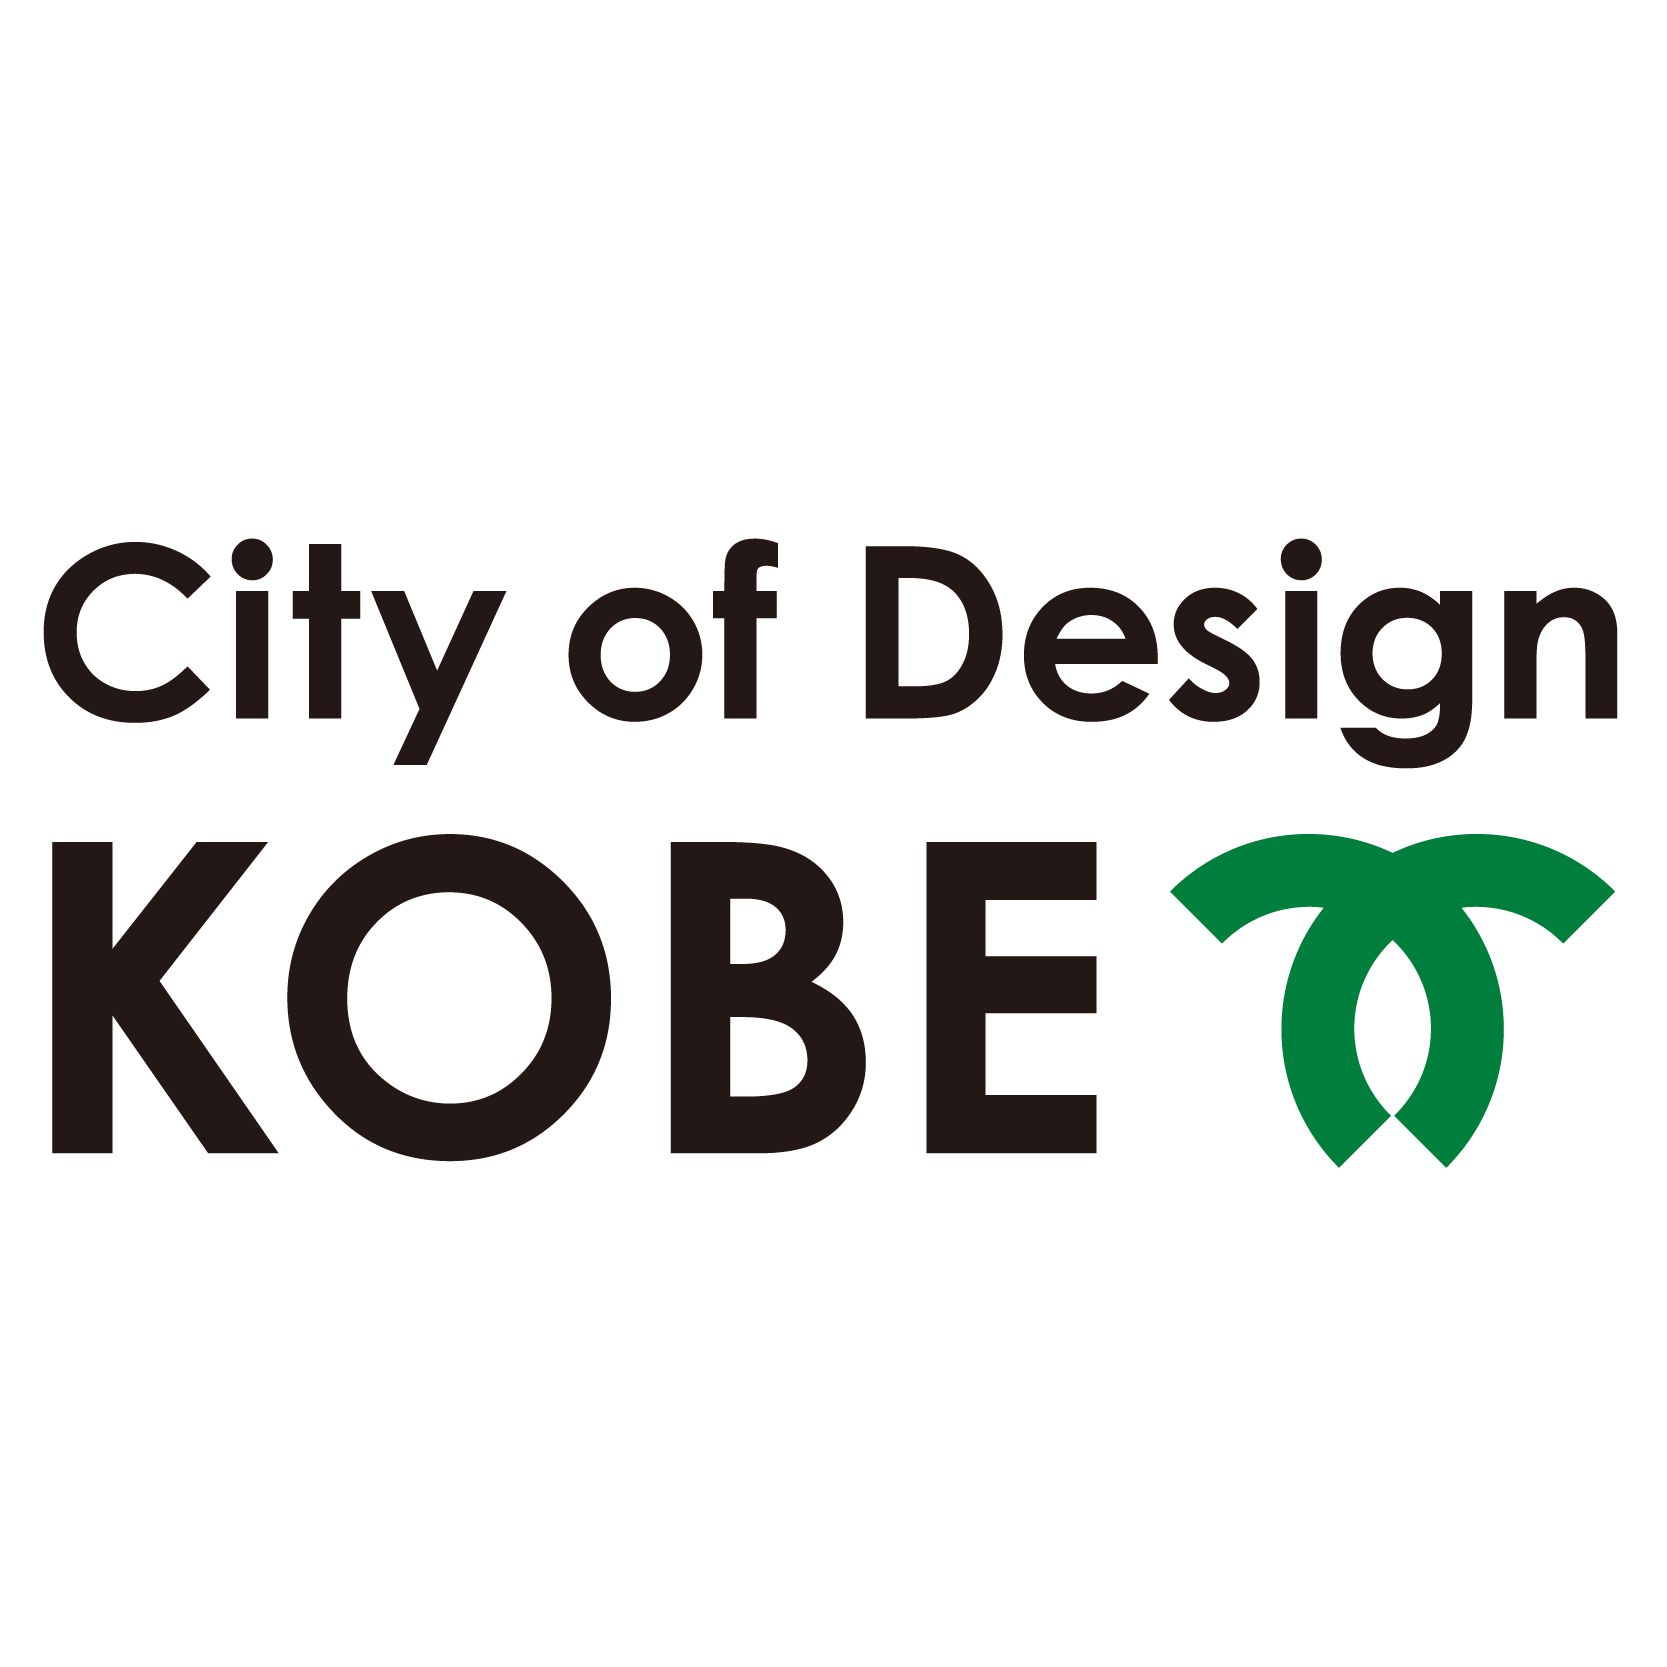 Kobe, City of Design